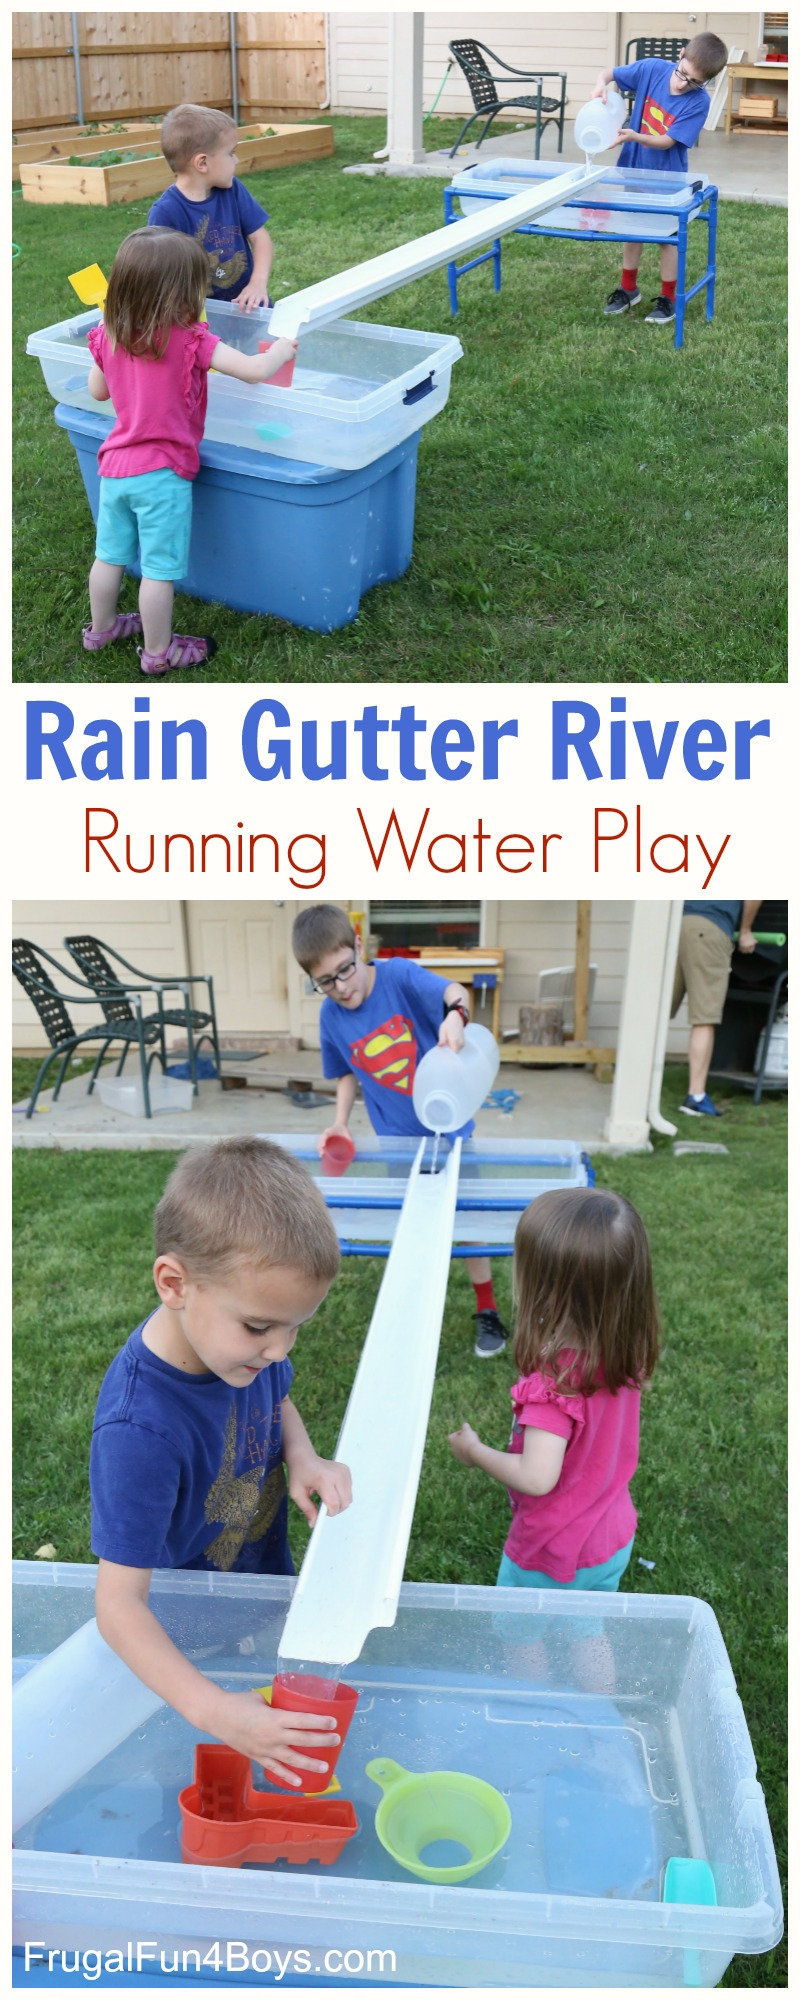 Drawn river child Running Play Water Water a